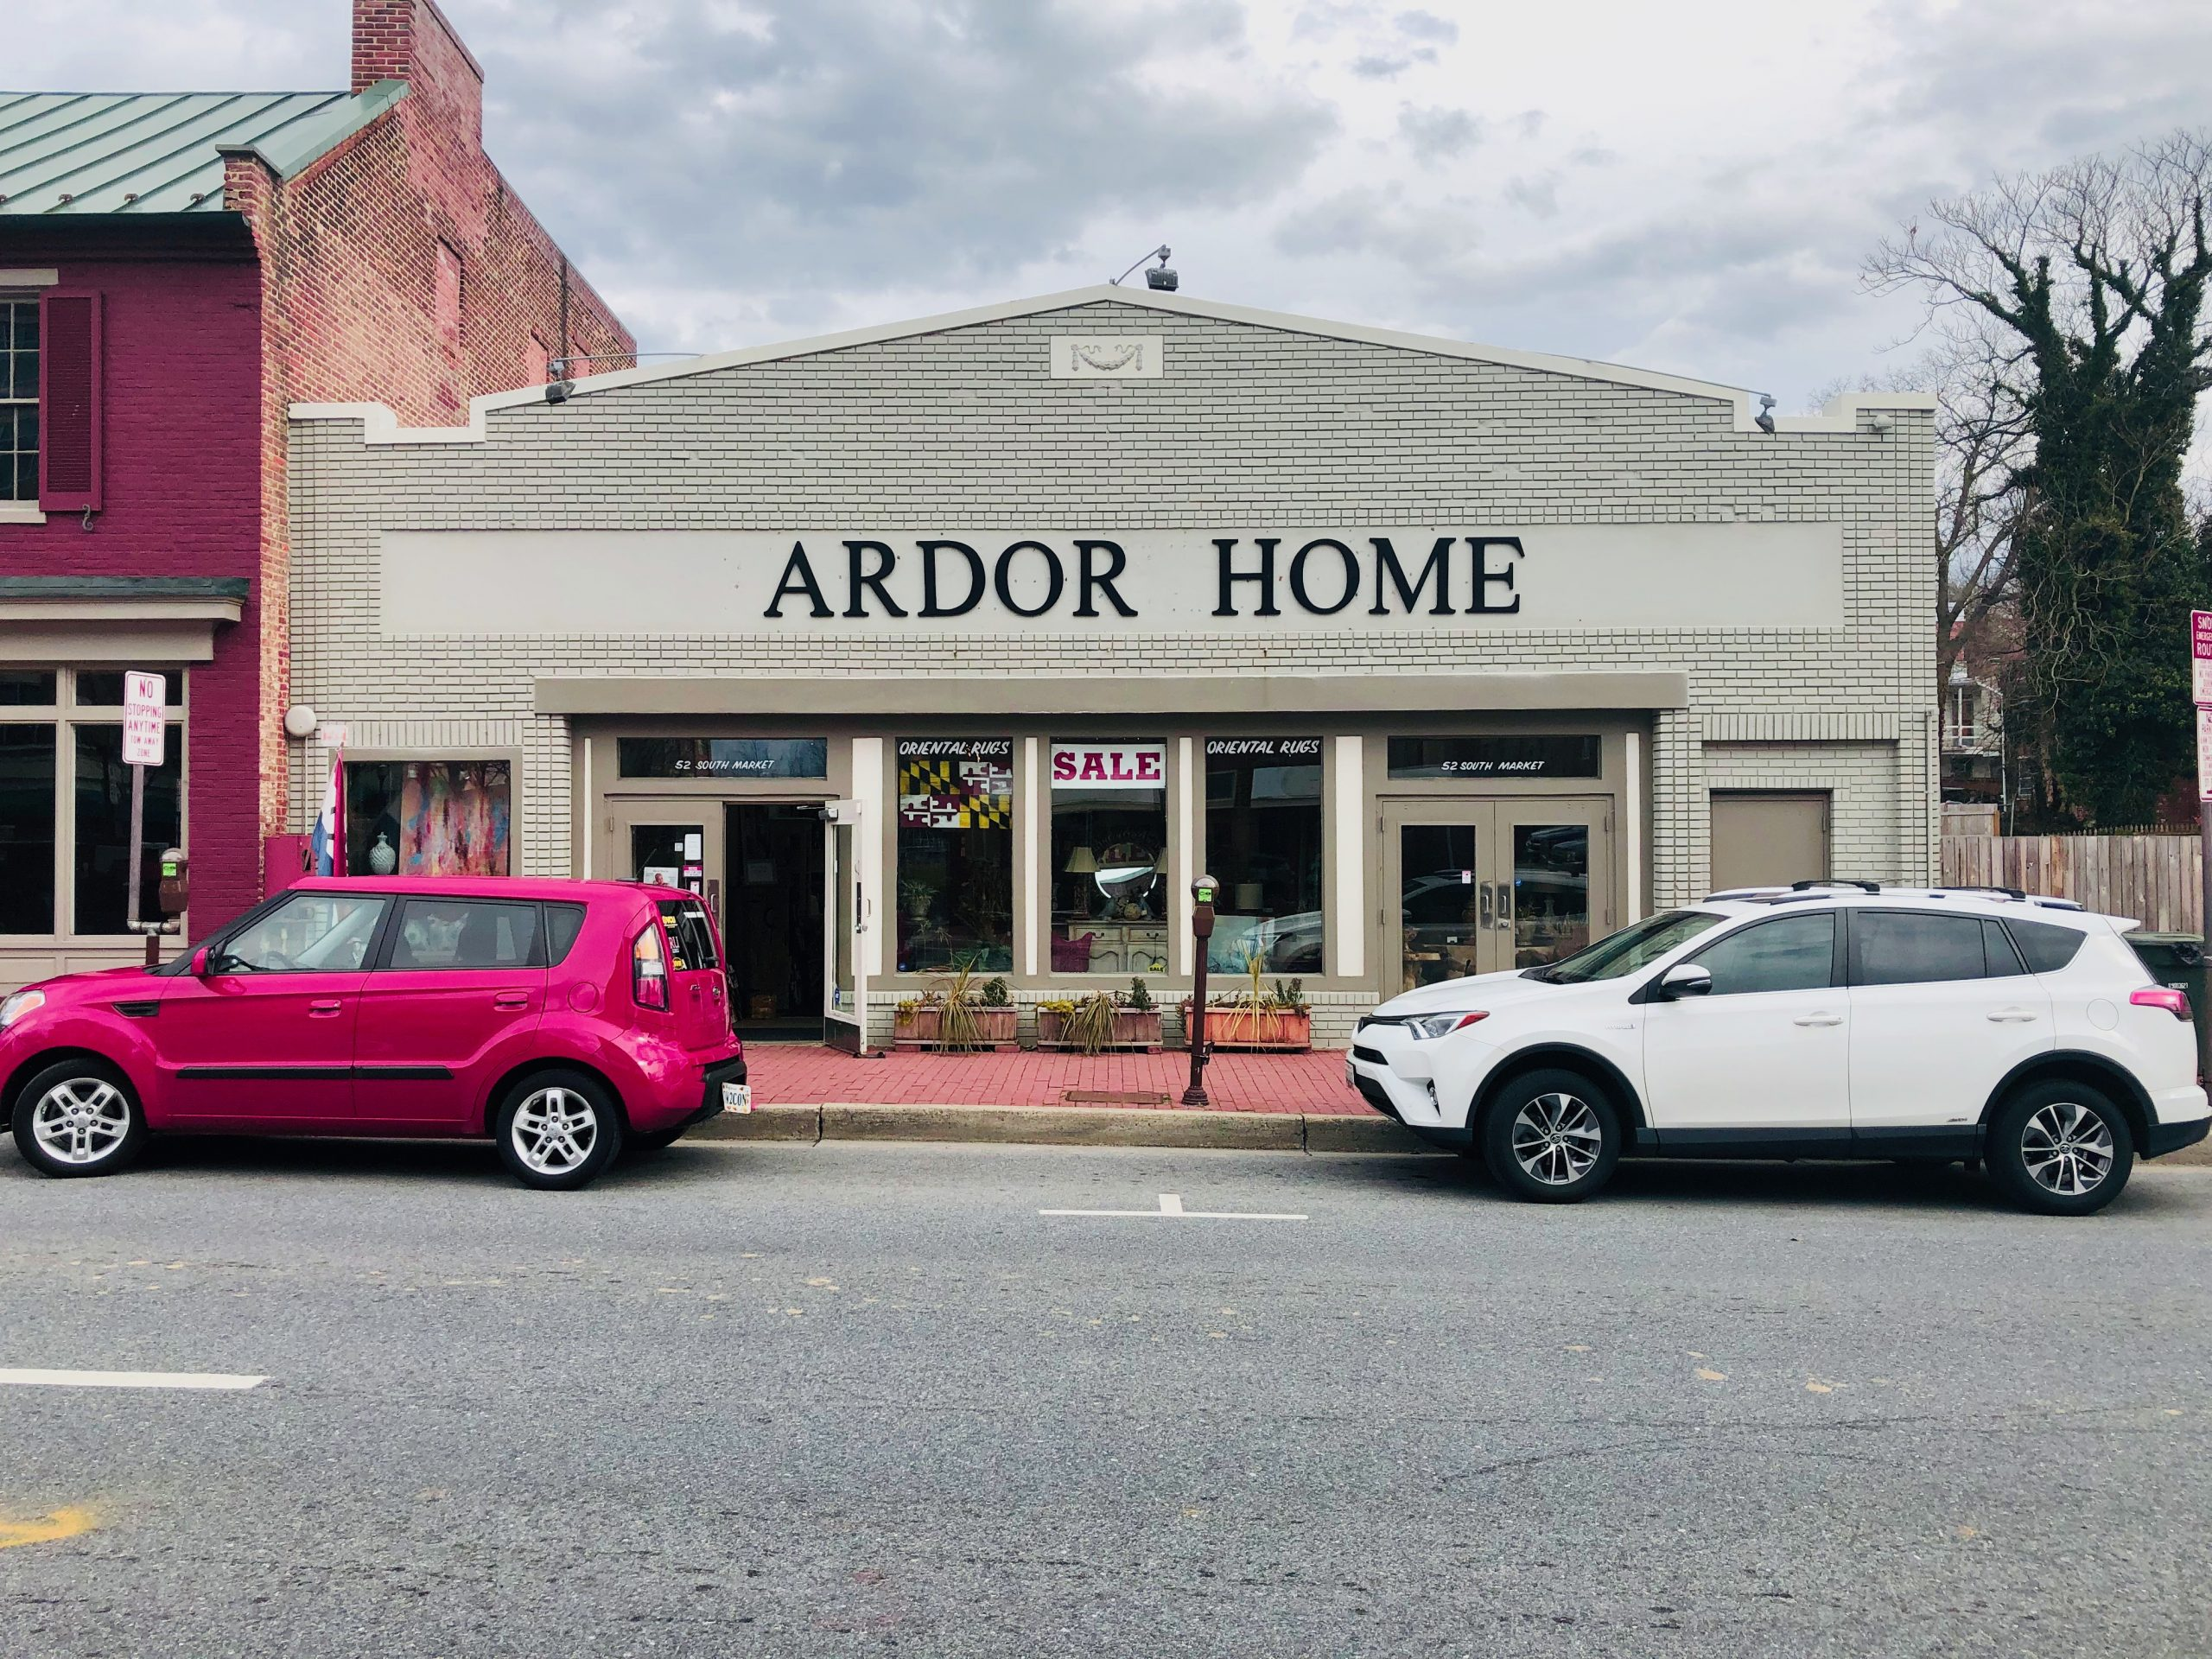 Ardor Home - Furniture & Rugs's post thumbnail for New Furniture & Rug Store